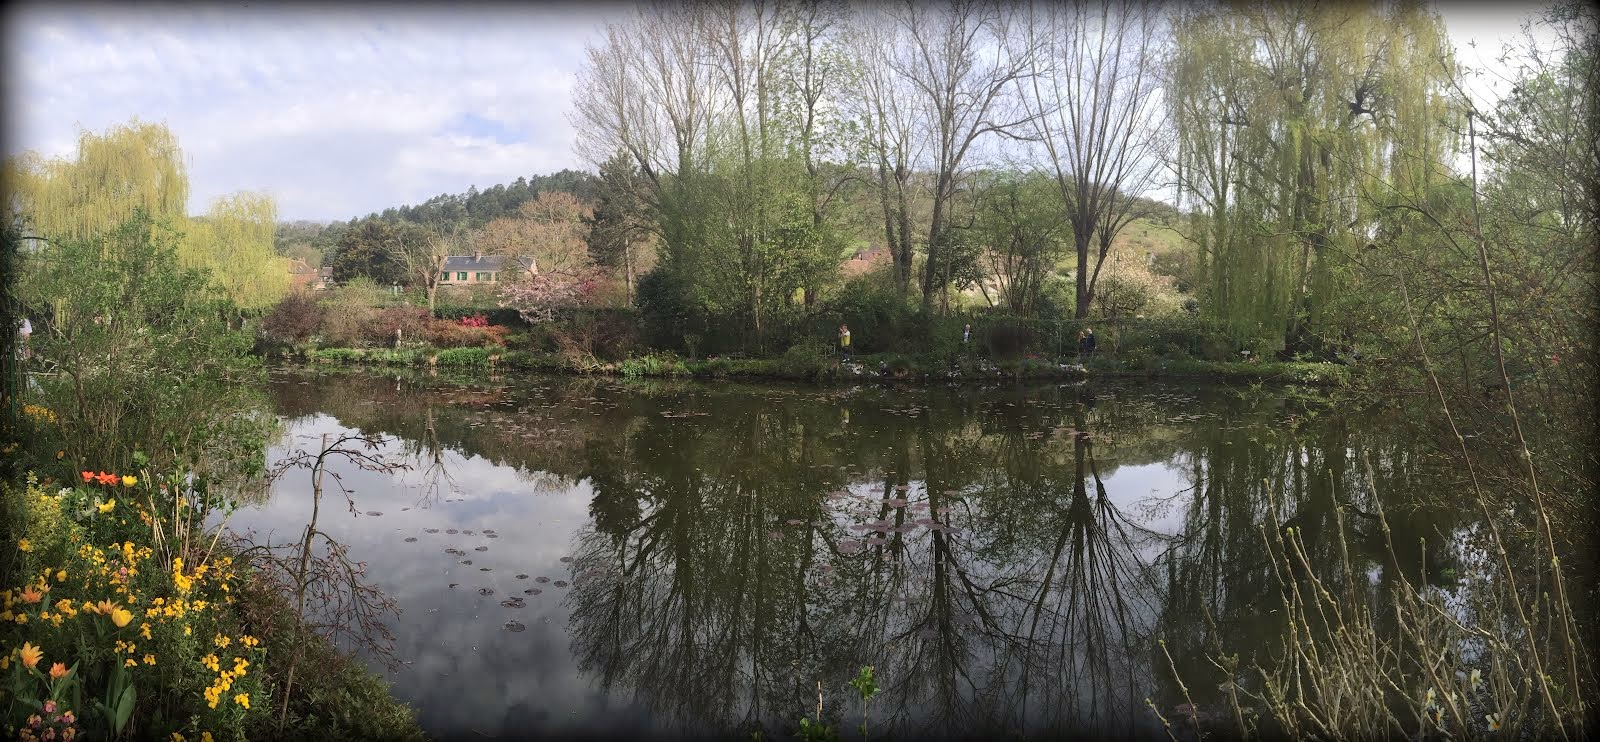 Water lily pond, Giverny, mid April